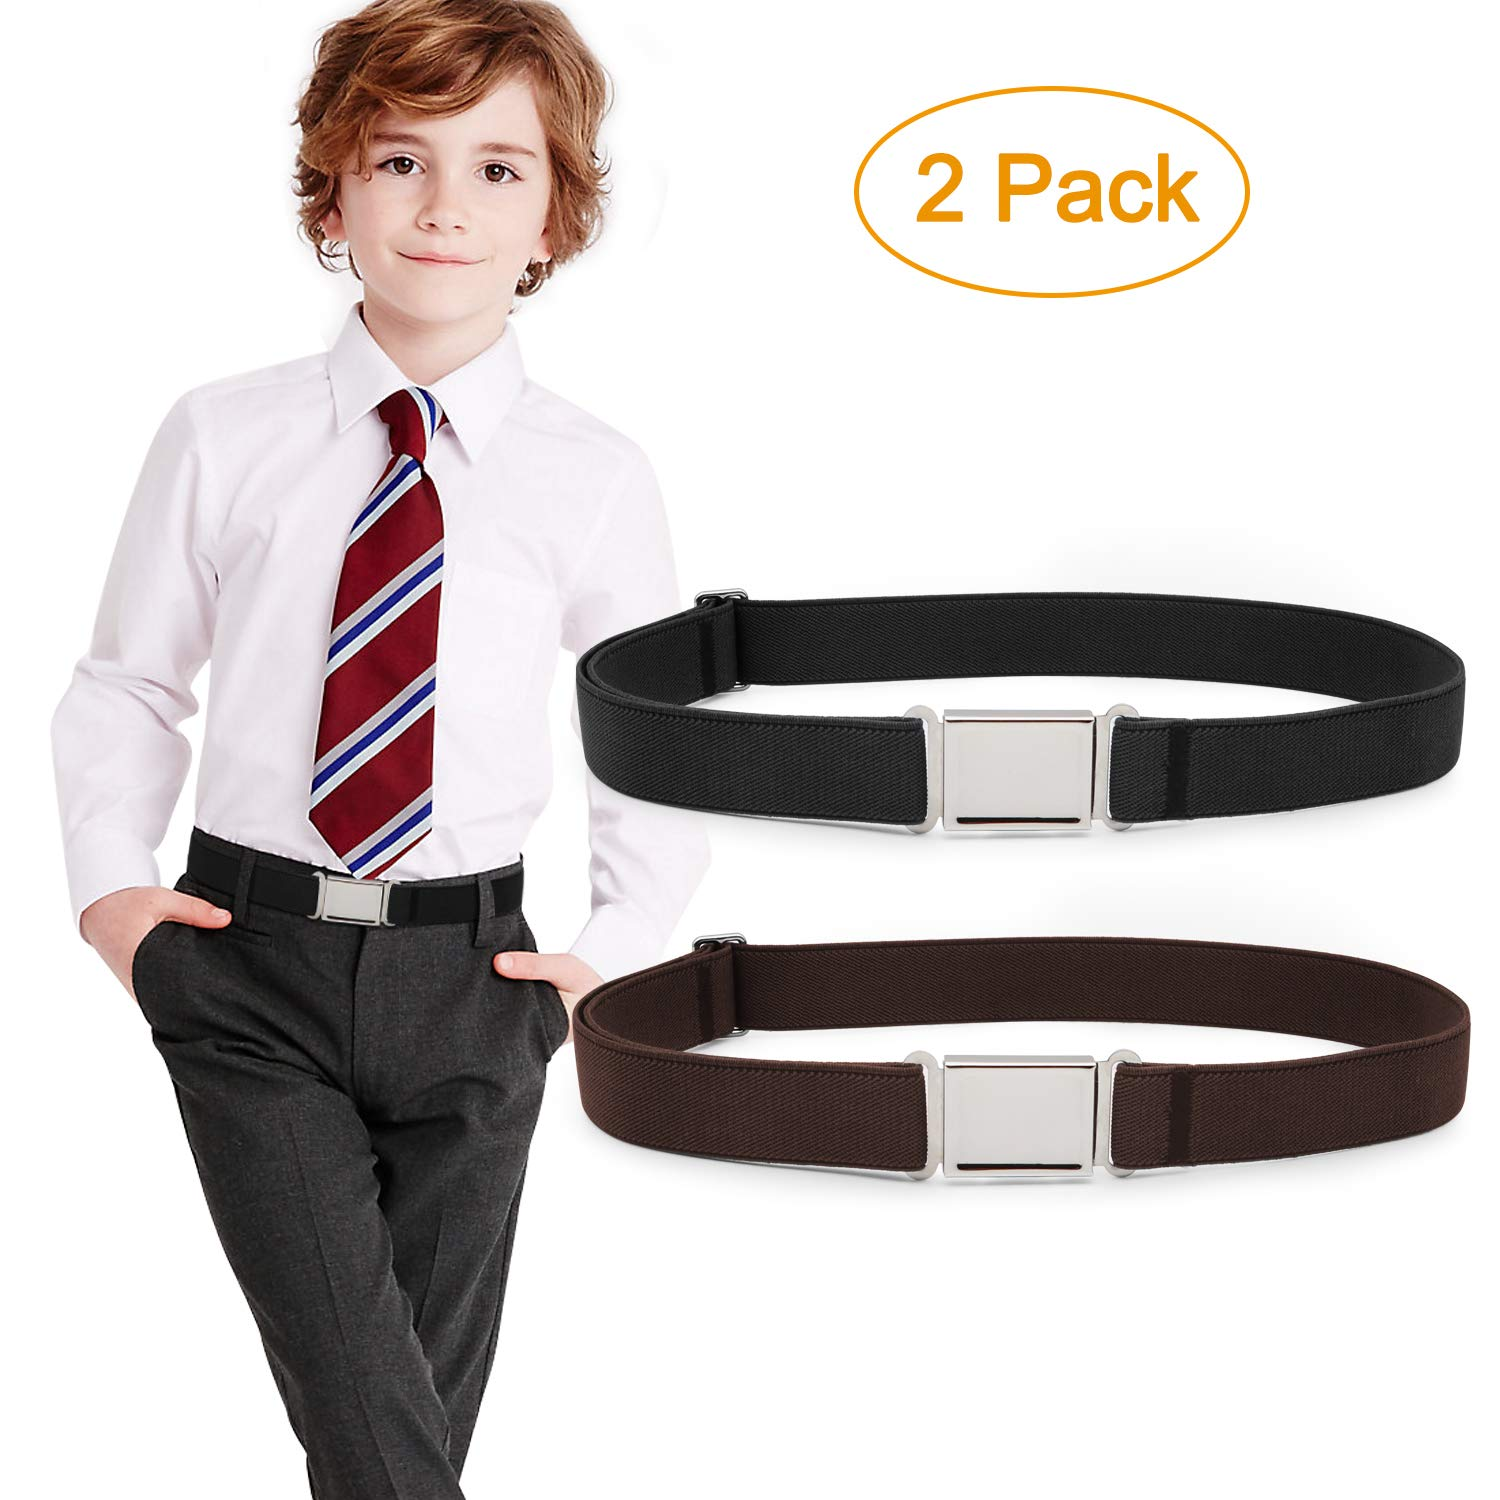 Great belts for little boys and girls!